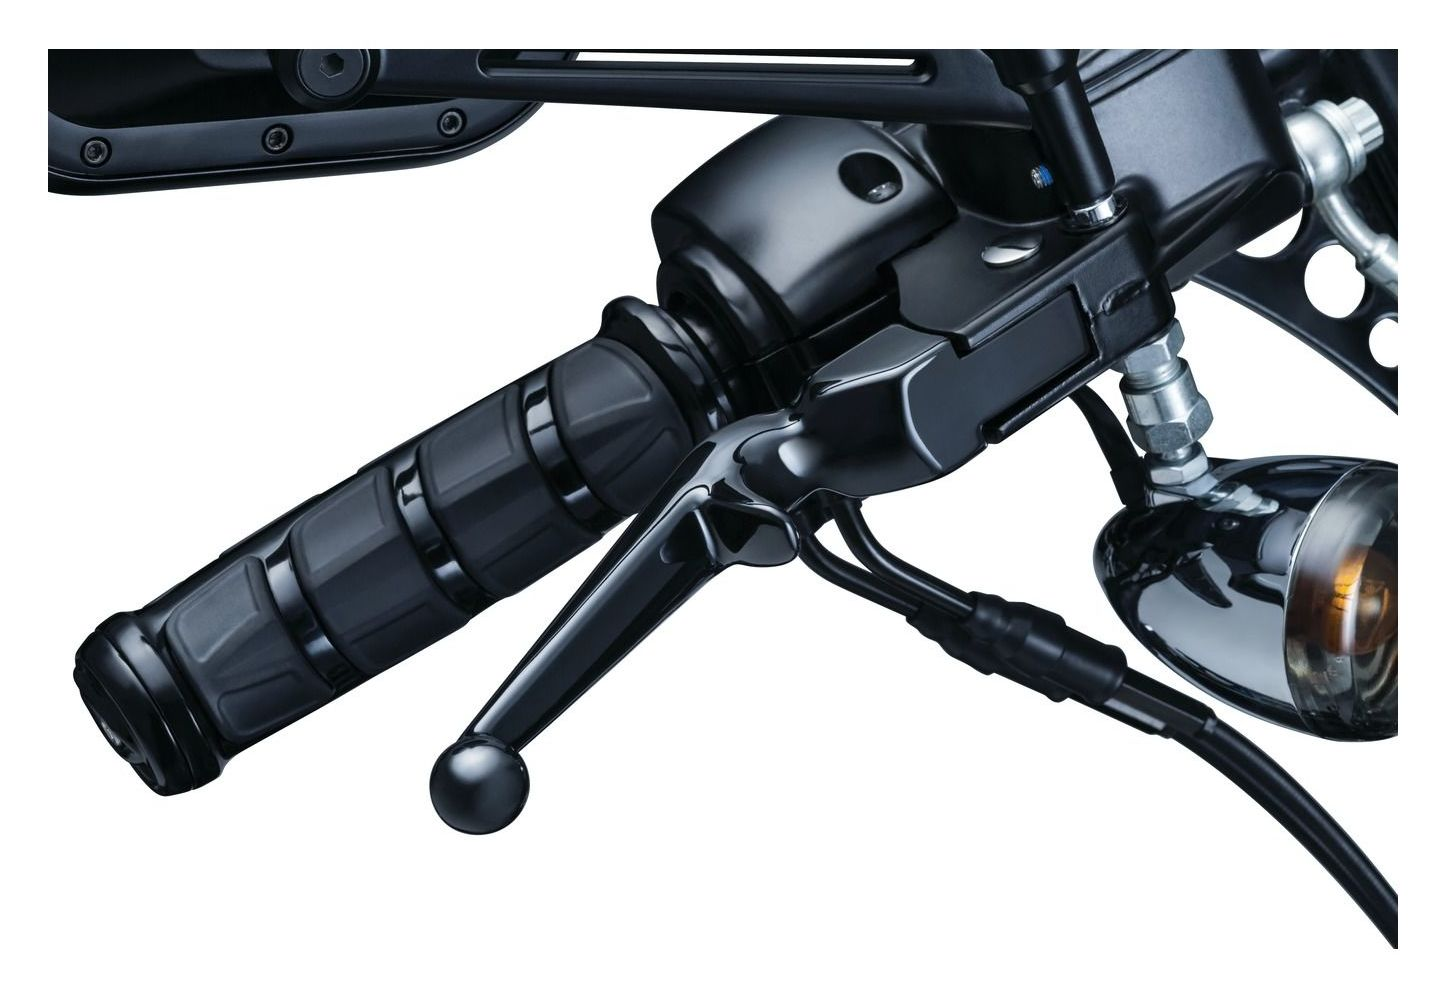 Kuryakyn 1836 Motorcycle Handlebar Accessory Clutch and Brake Trigger Levers for 2015-17 Harley-Davidson Softail Motorcycles Gloss Black 1 Pair